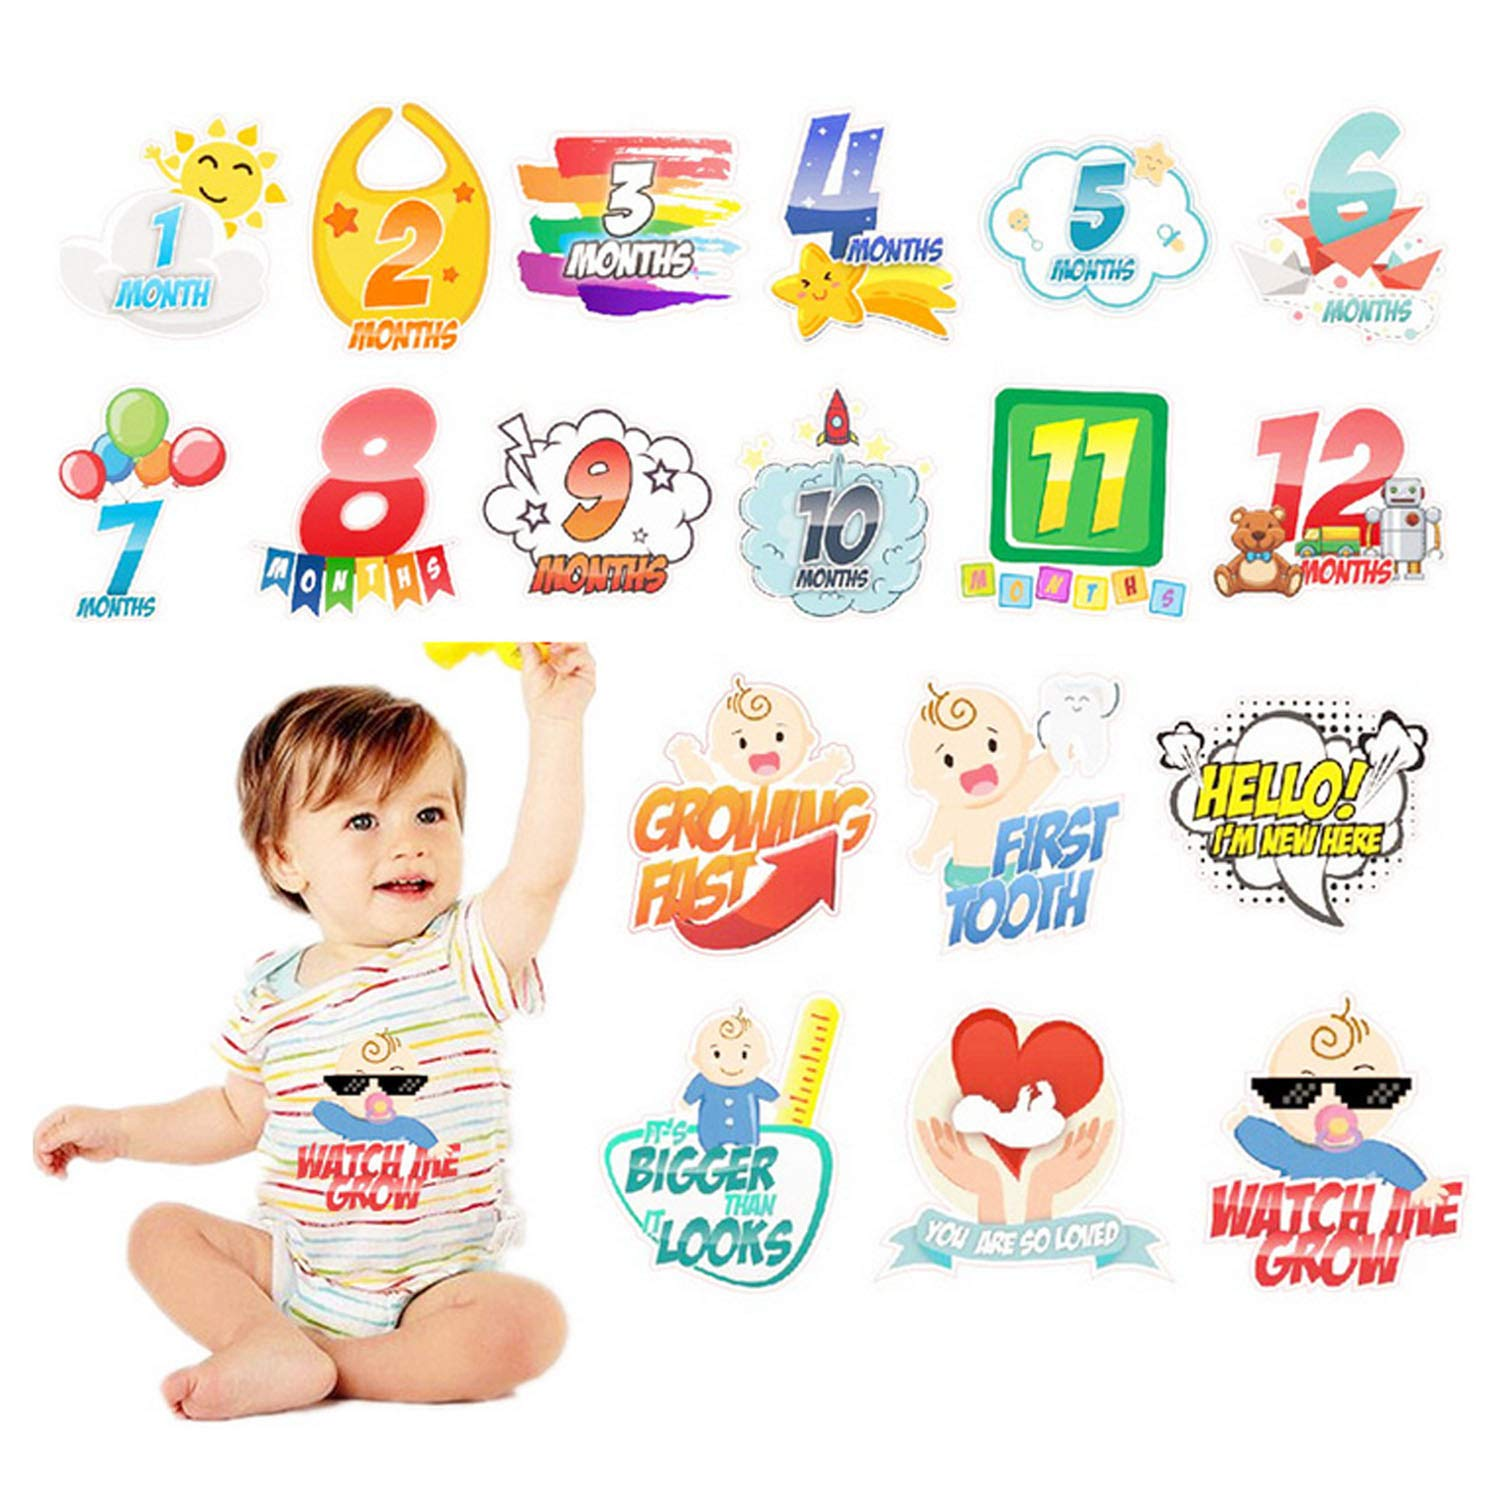 18pcs Cute Lovely Baby Monthly Milestone Stickers 12 Months + 6 Special Stickers for Newborn Baby First Year Baby Shower Gifts Boy Gosear